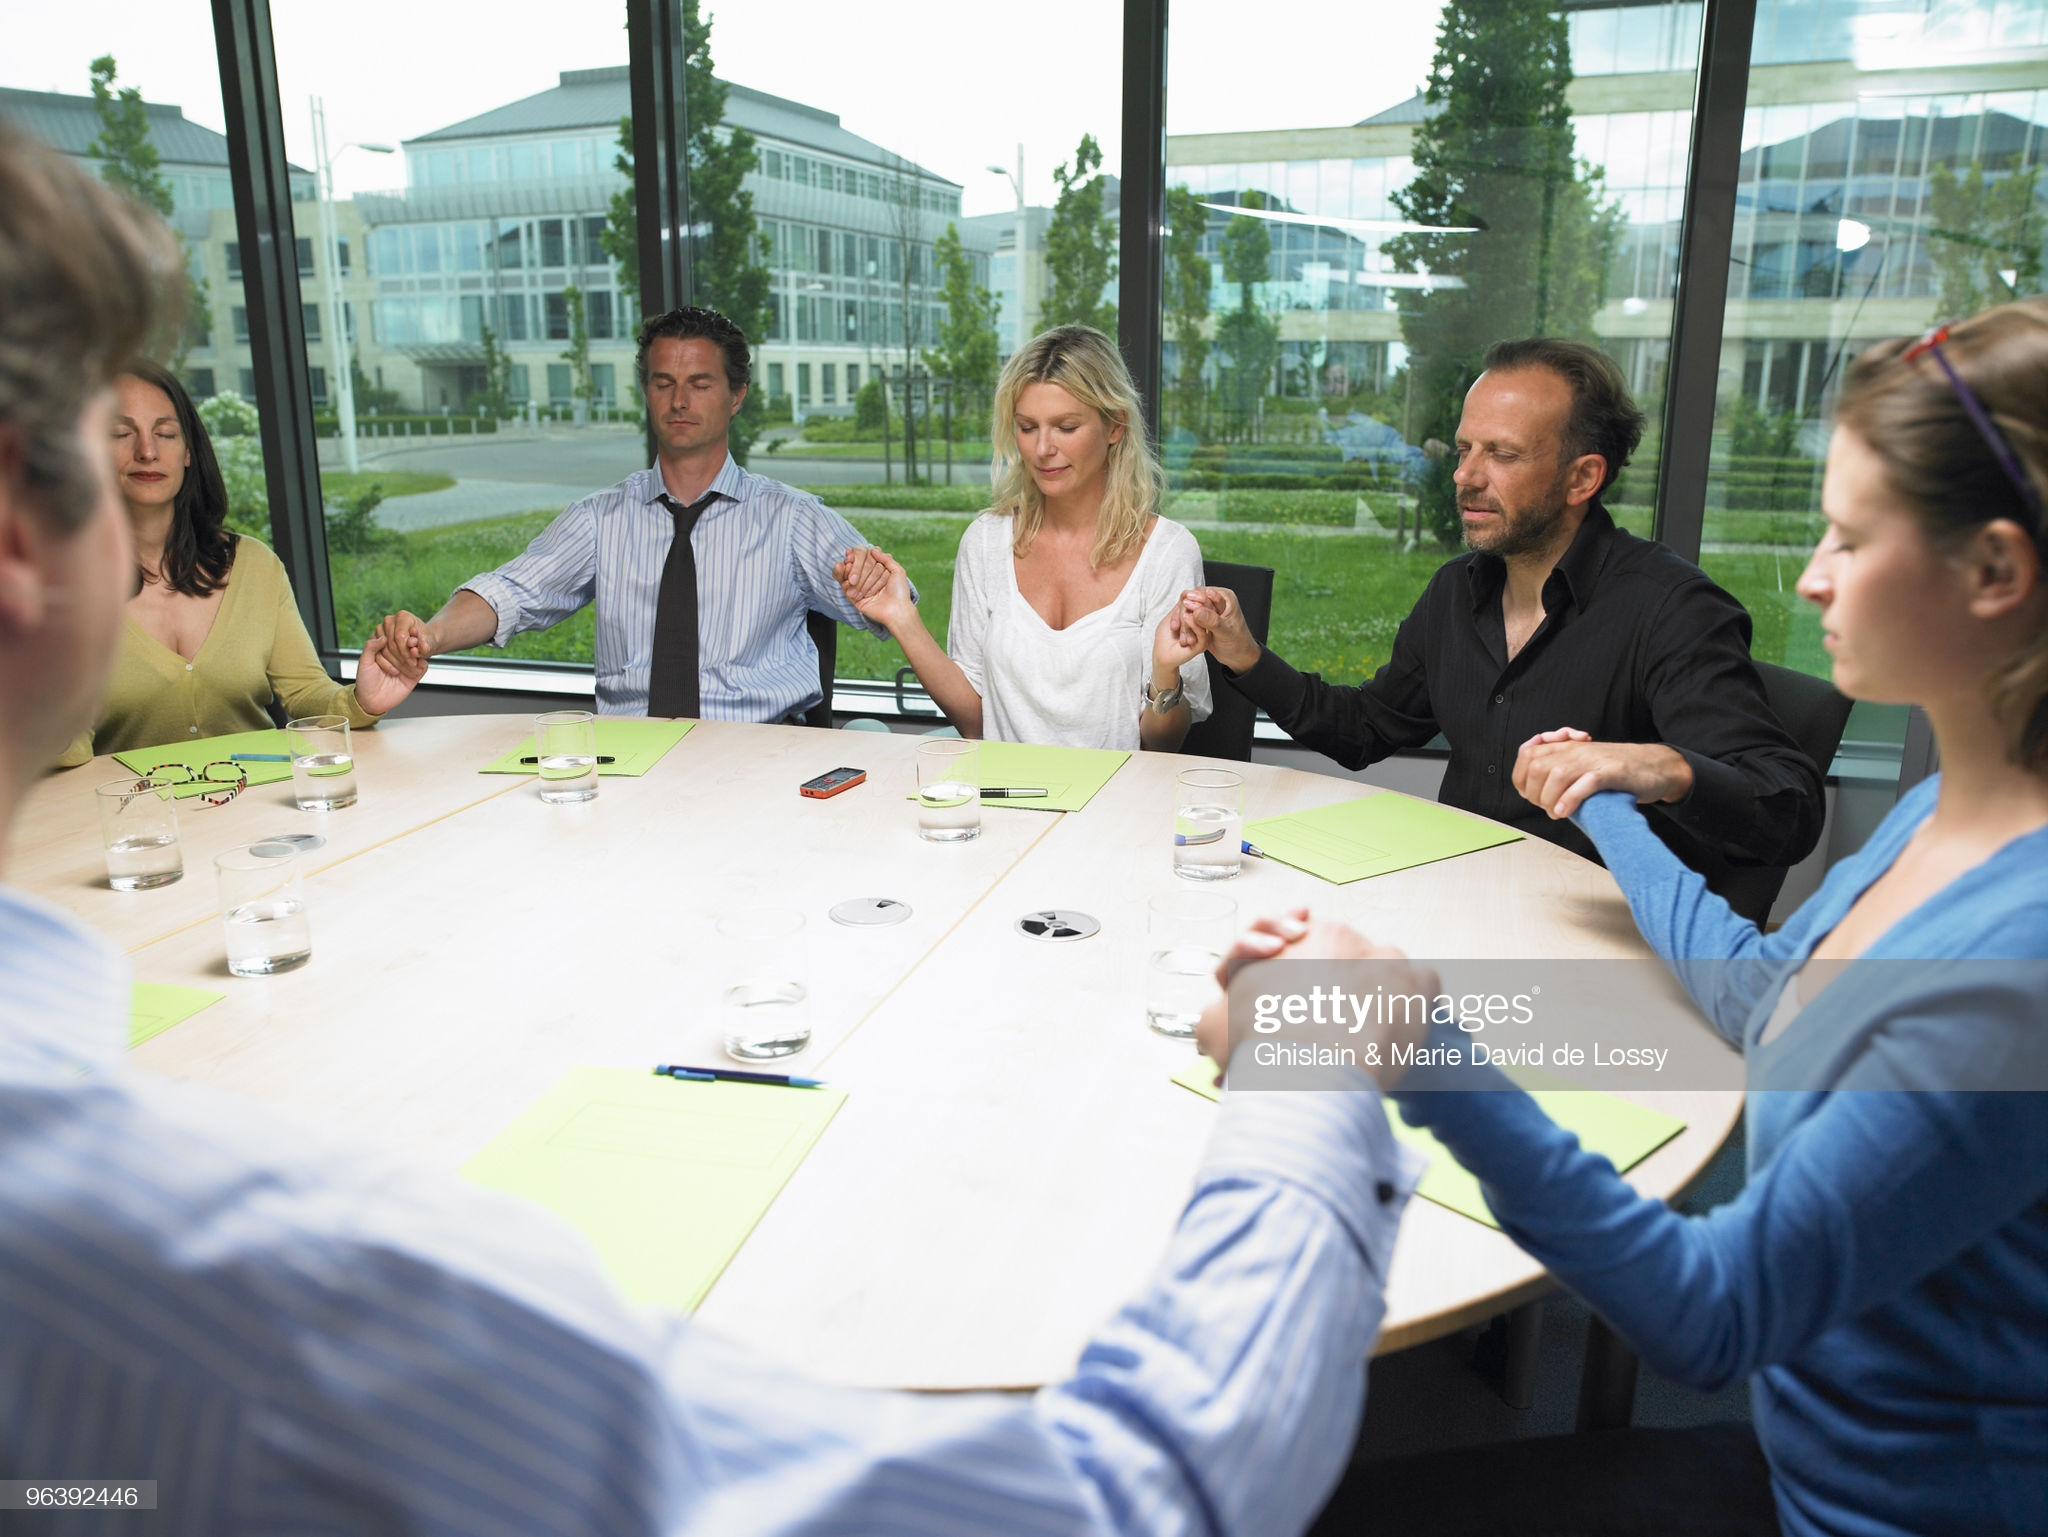 Coworkers holding hands - stock photo. Getty Images, Ghislain & Marie David de Lossy.